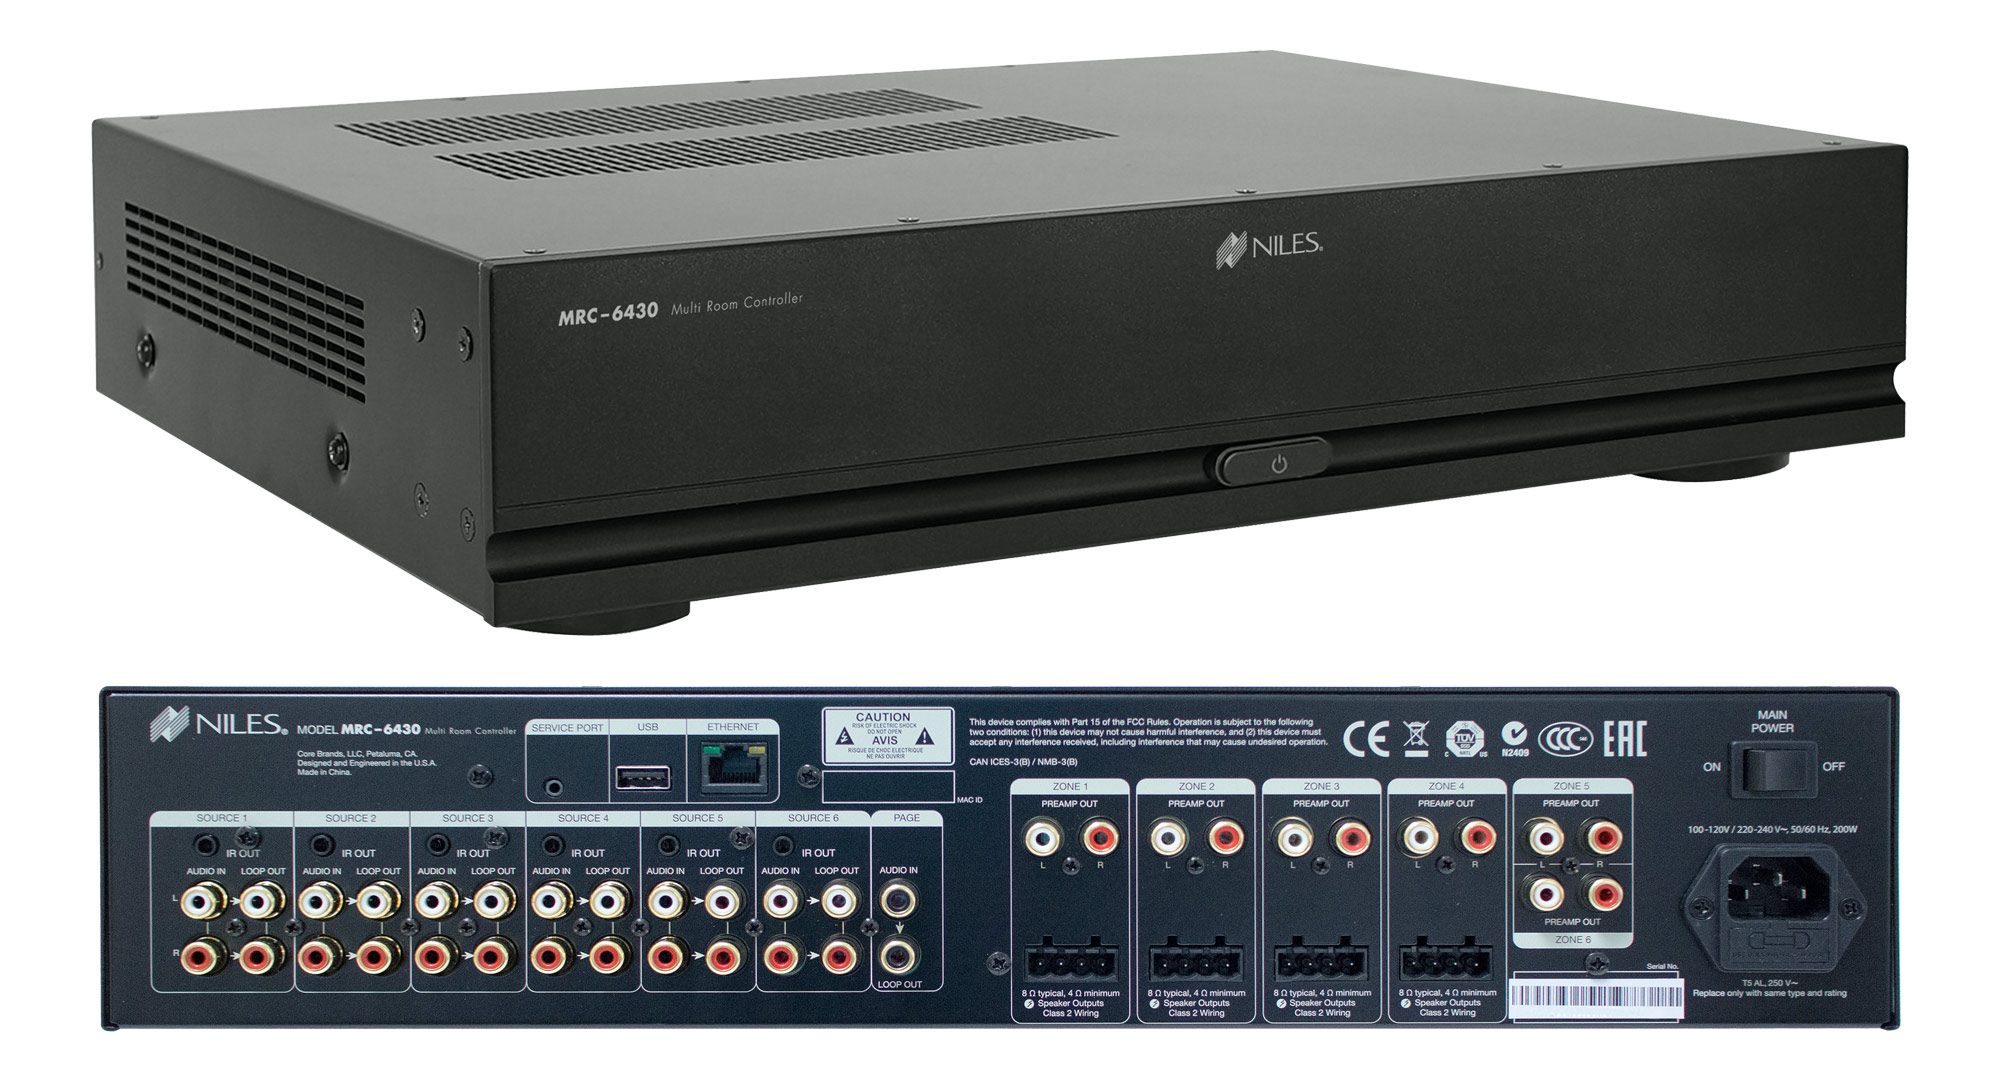 niles mrc6430 multi room audio and control chassis. Black Bedroom Furniture Sets. Home Design Ideas